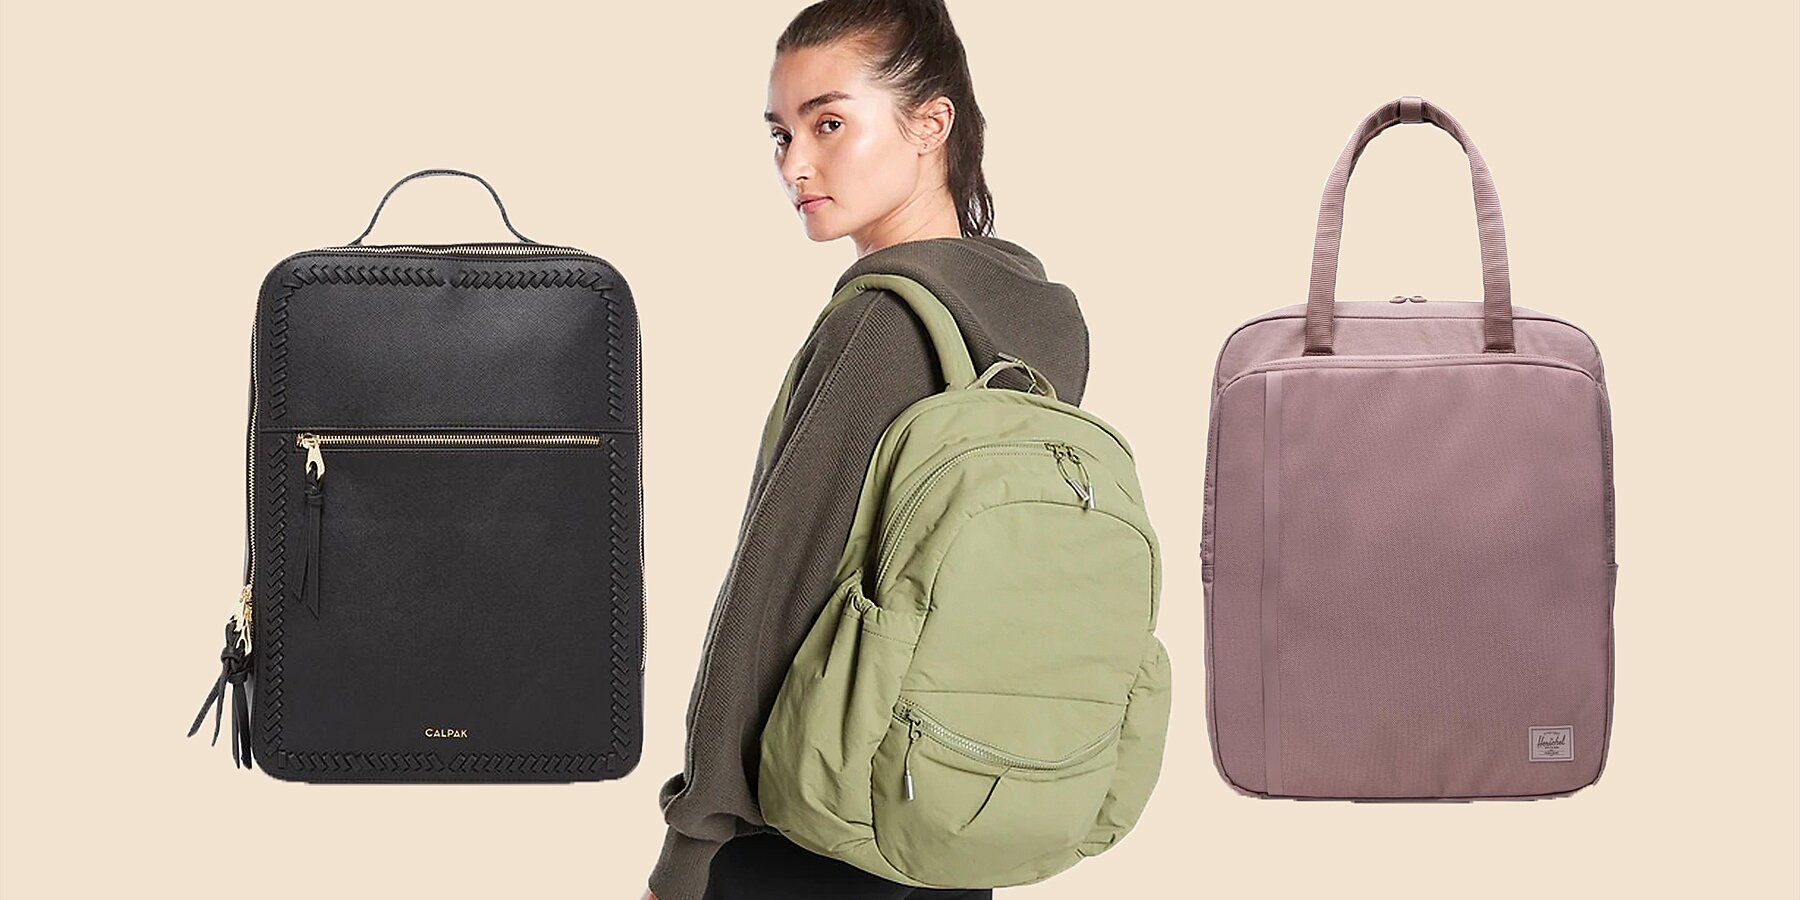 9 Best Totes and Backpacks For Work or School